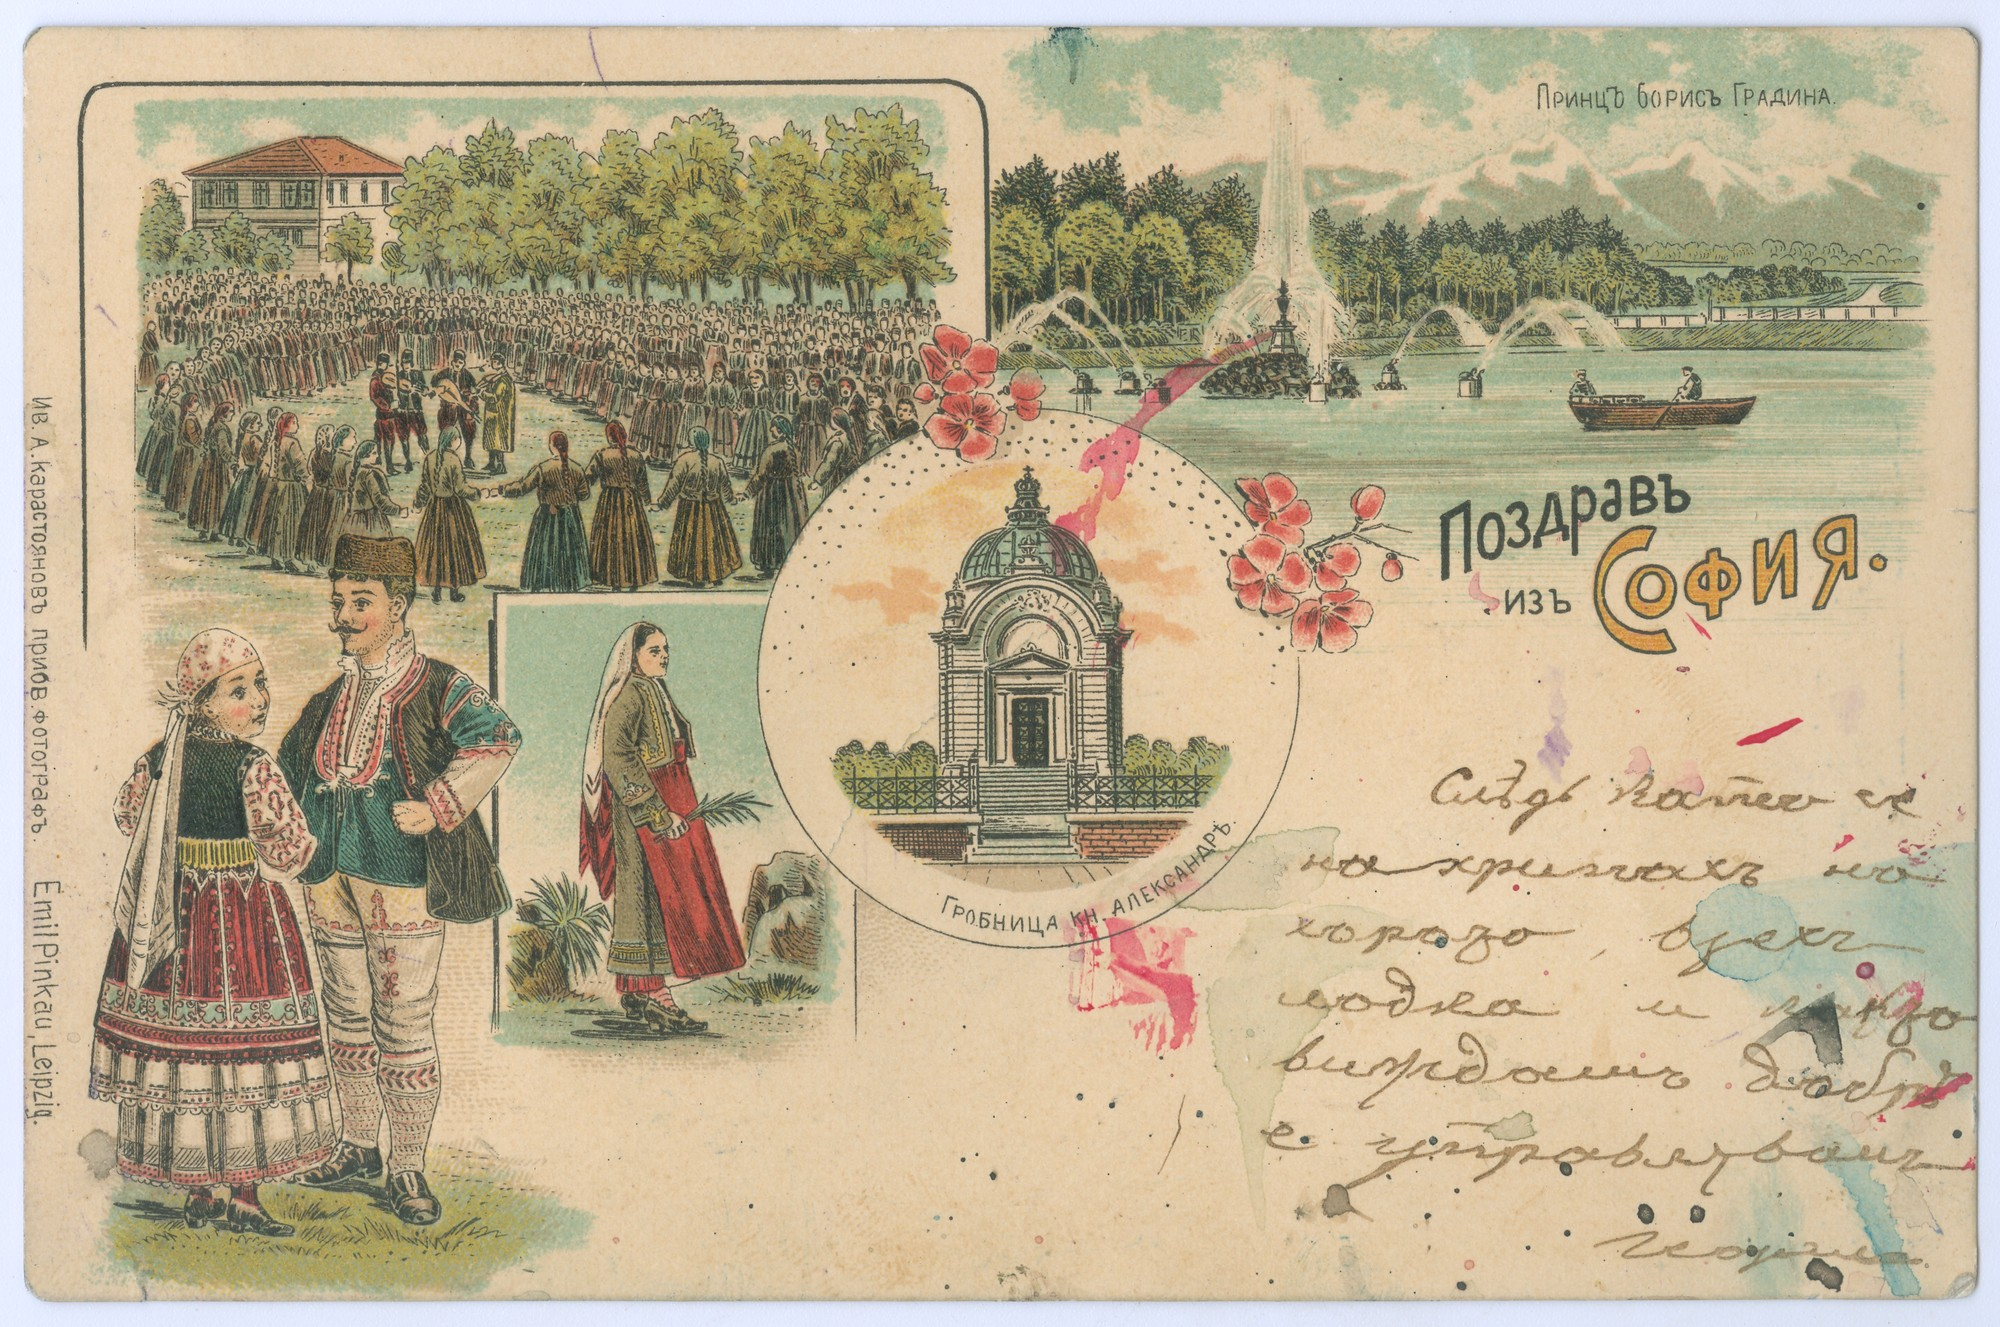 """Greetings from Sofia."", © State Archives - Plovdiv"